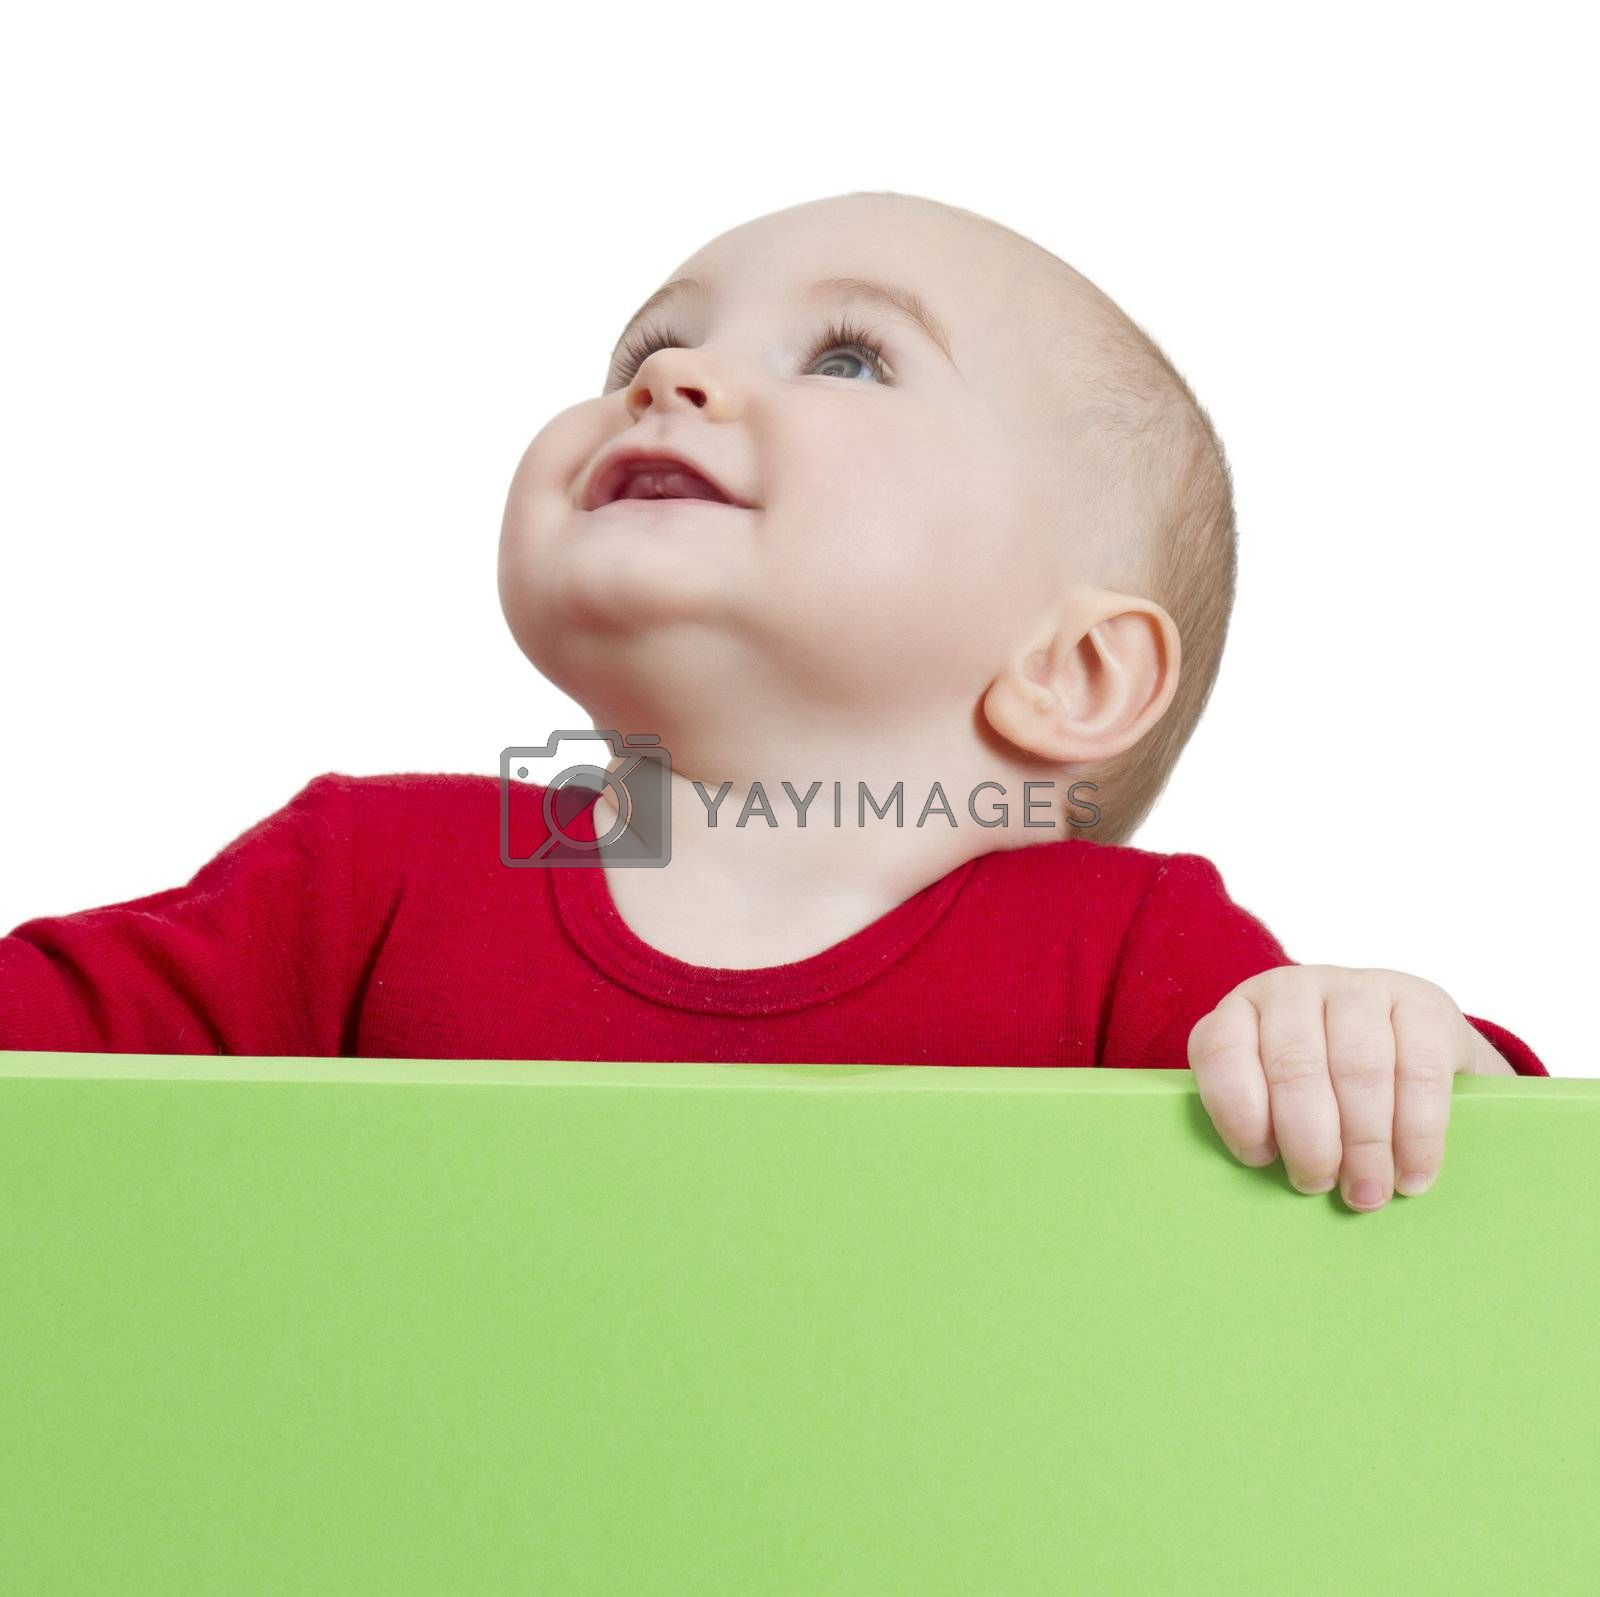 young child holding shield. isolate on white background